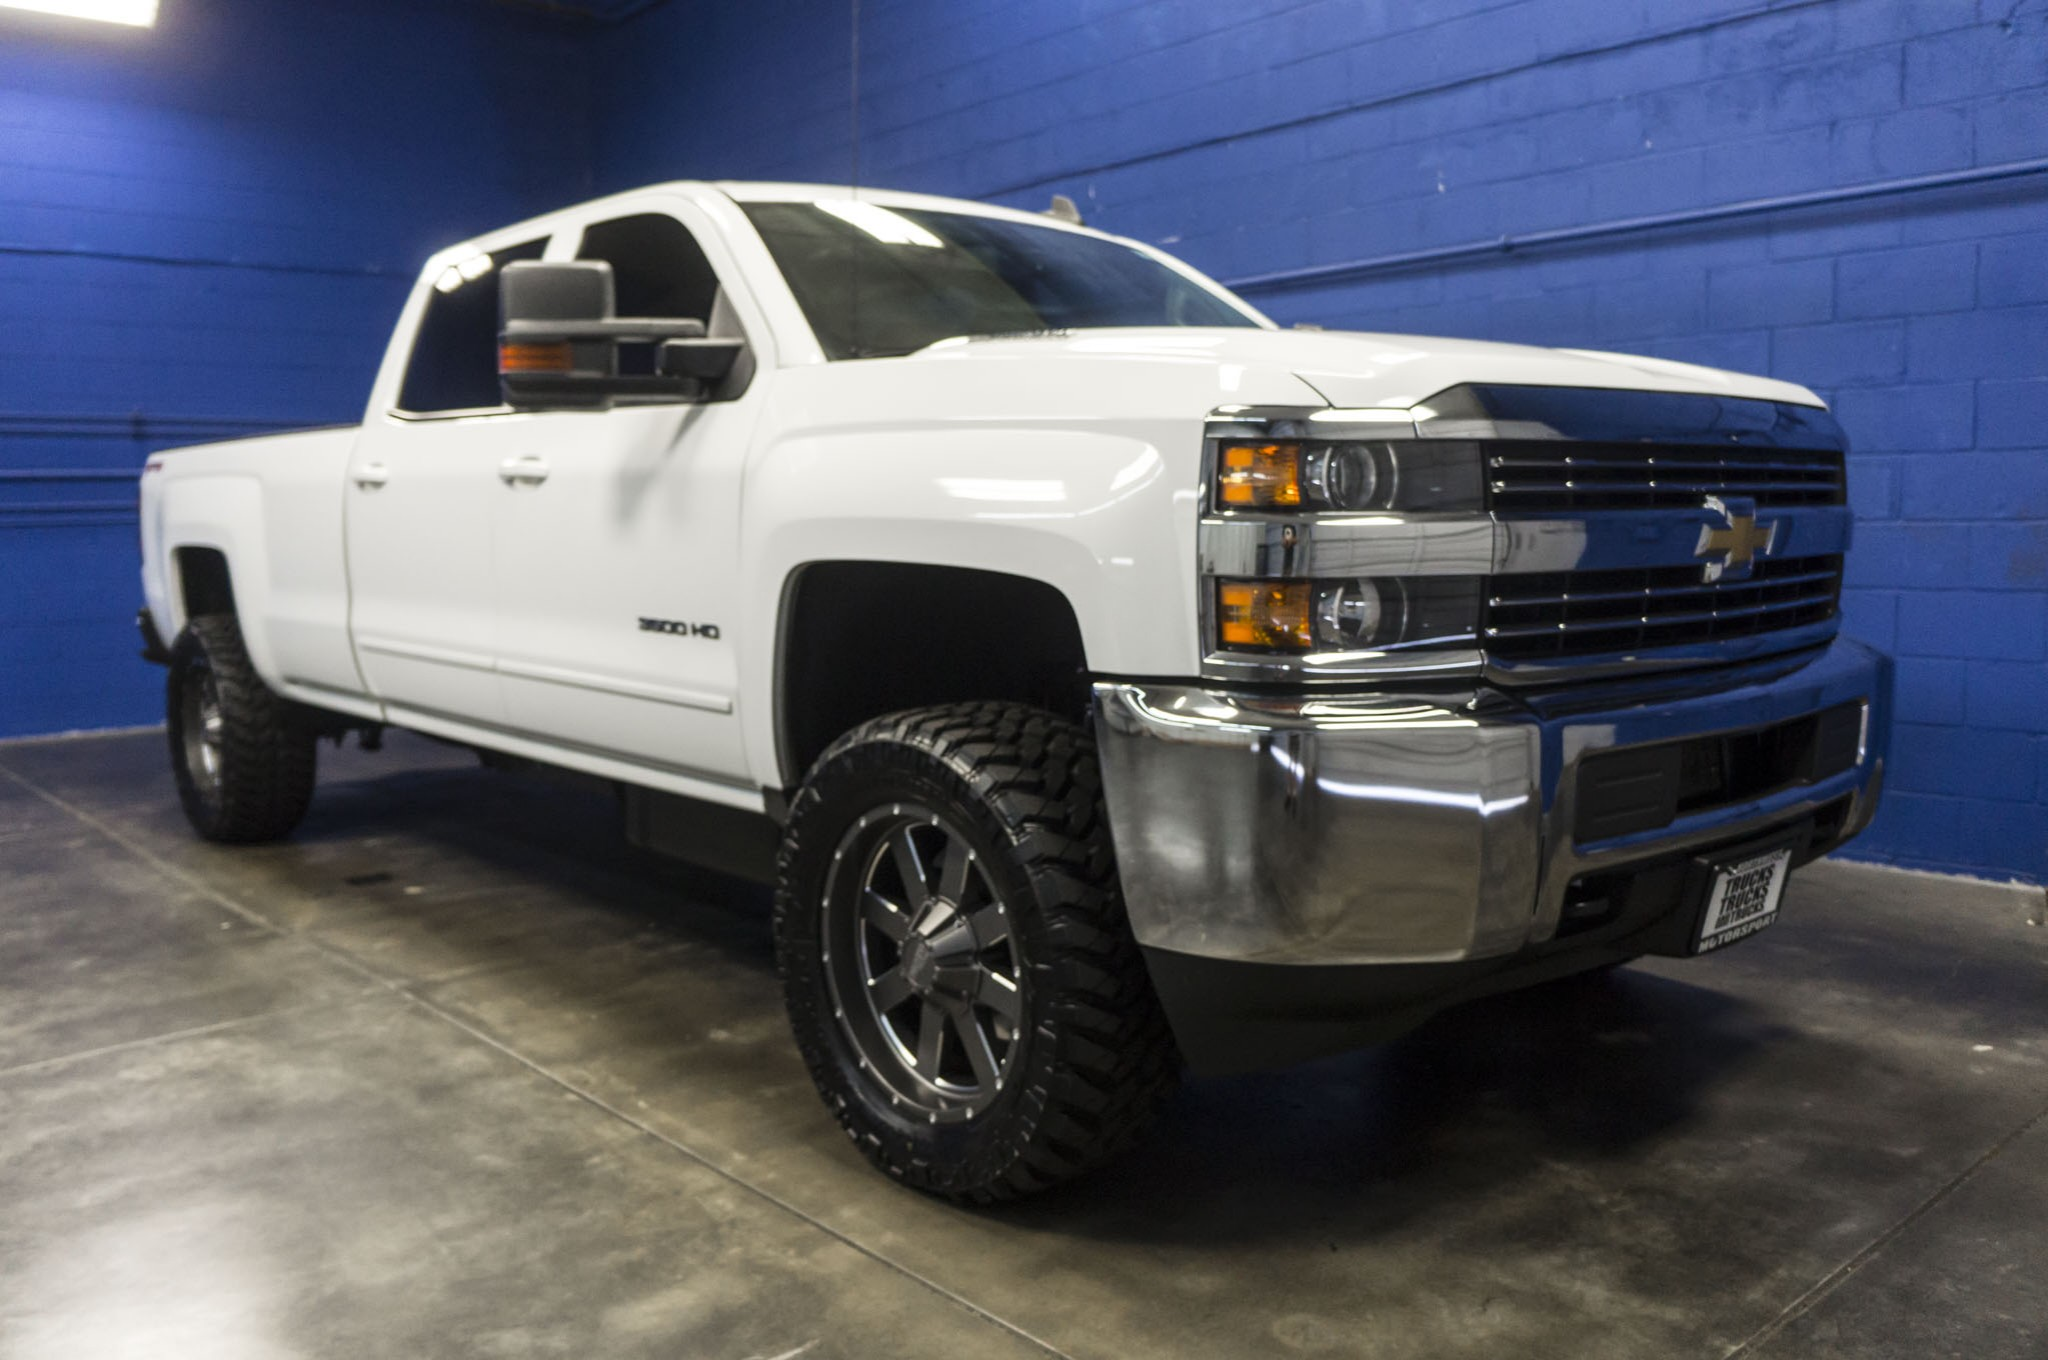 Used Lifted 2015 Chevrolet Silverado 3500 LT 4x4 Diesel Truck For